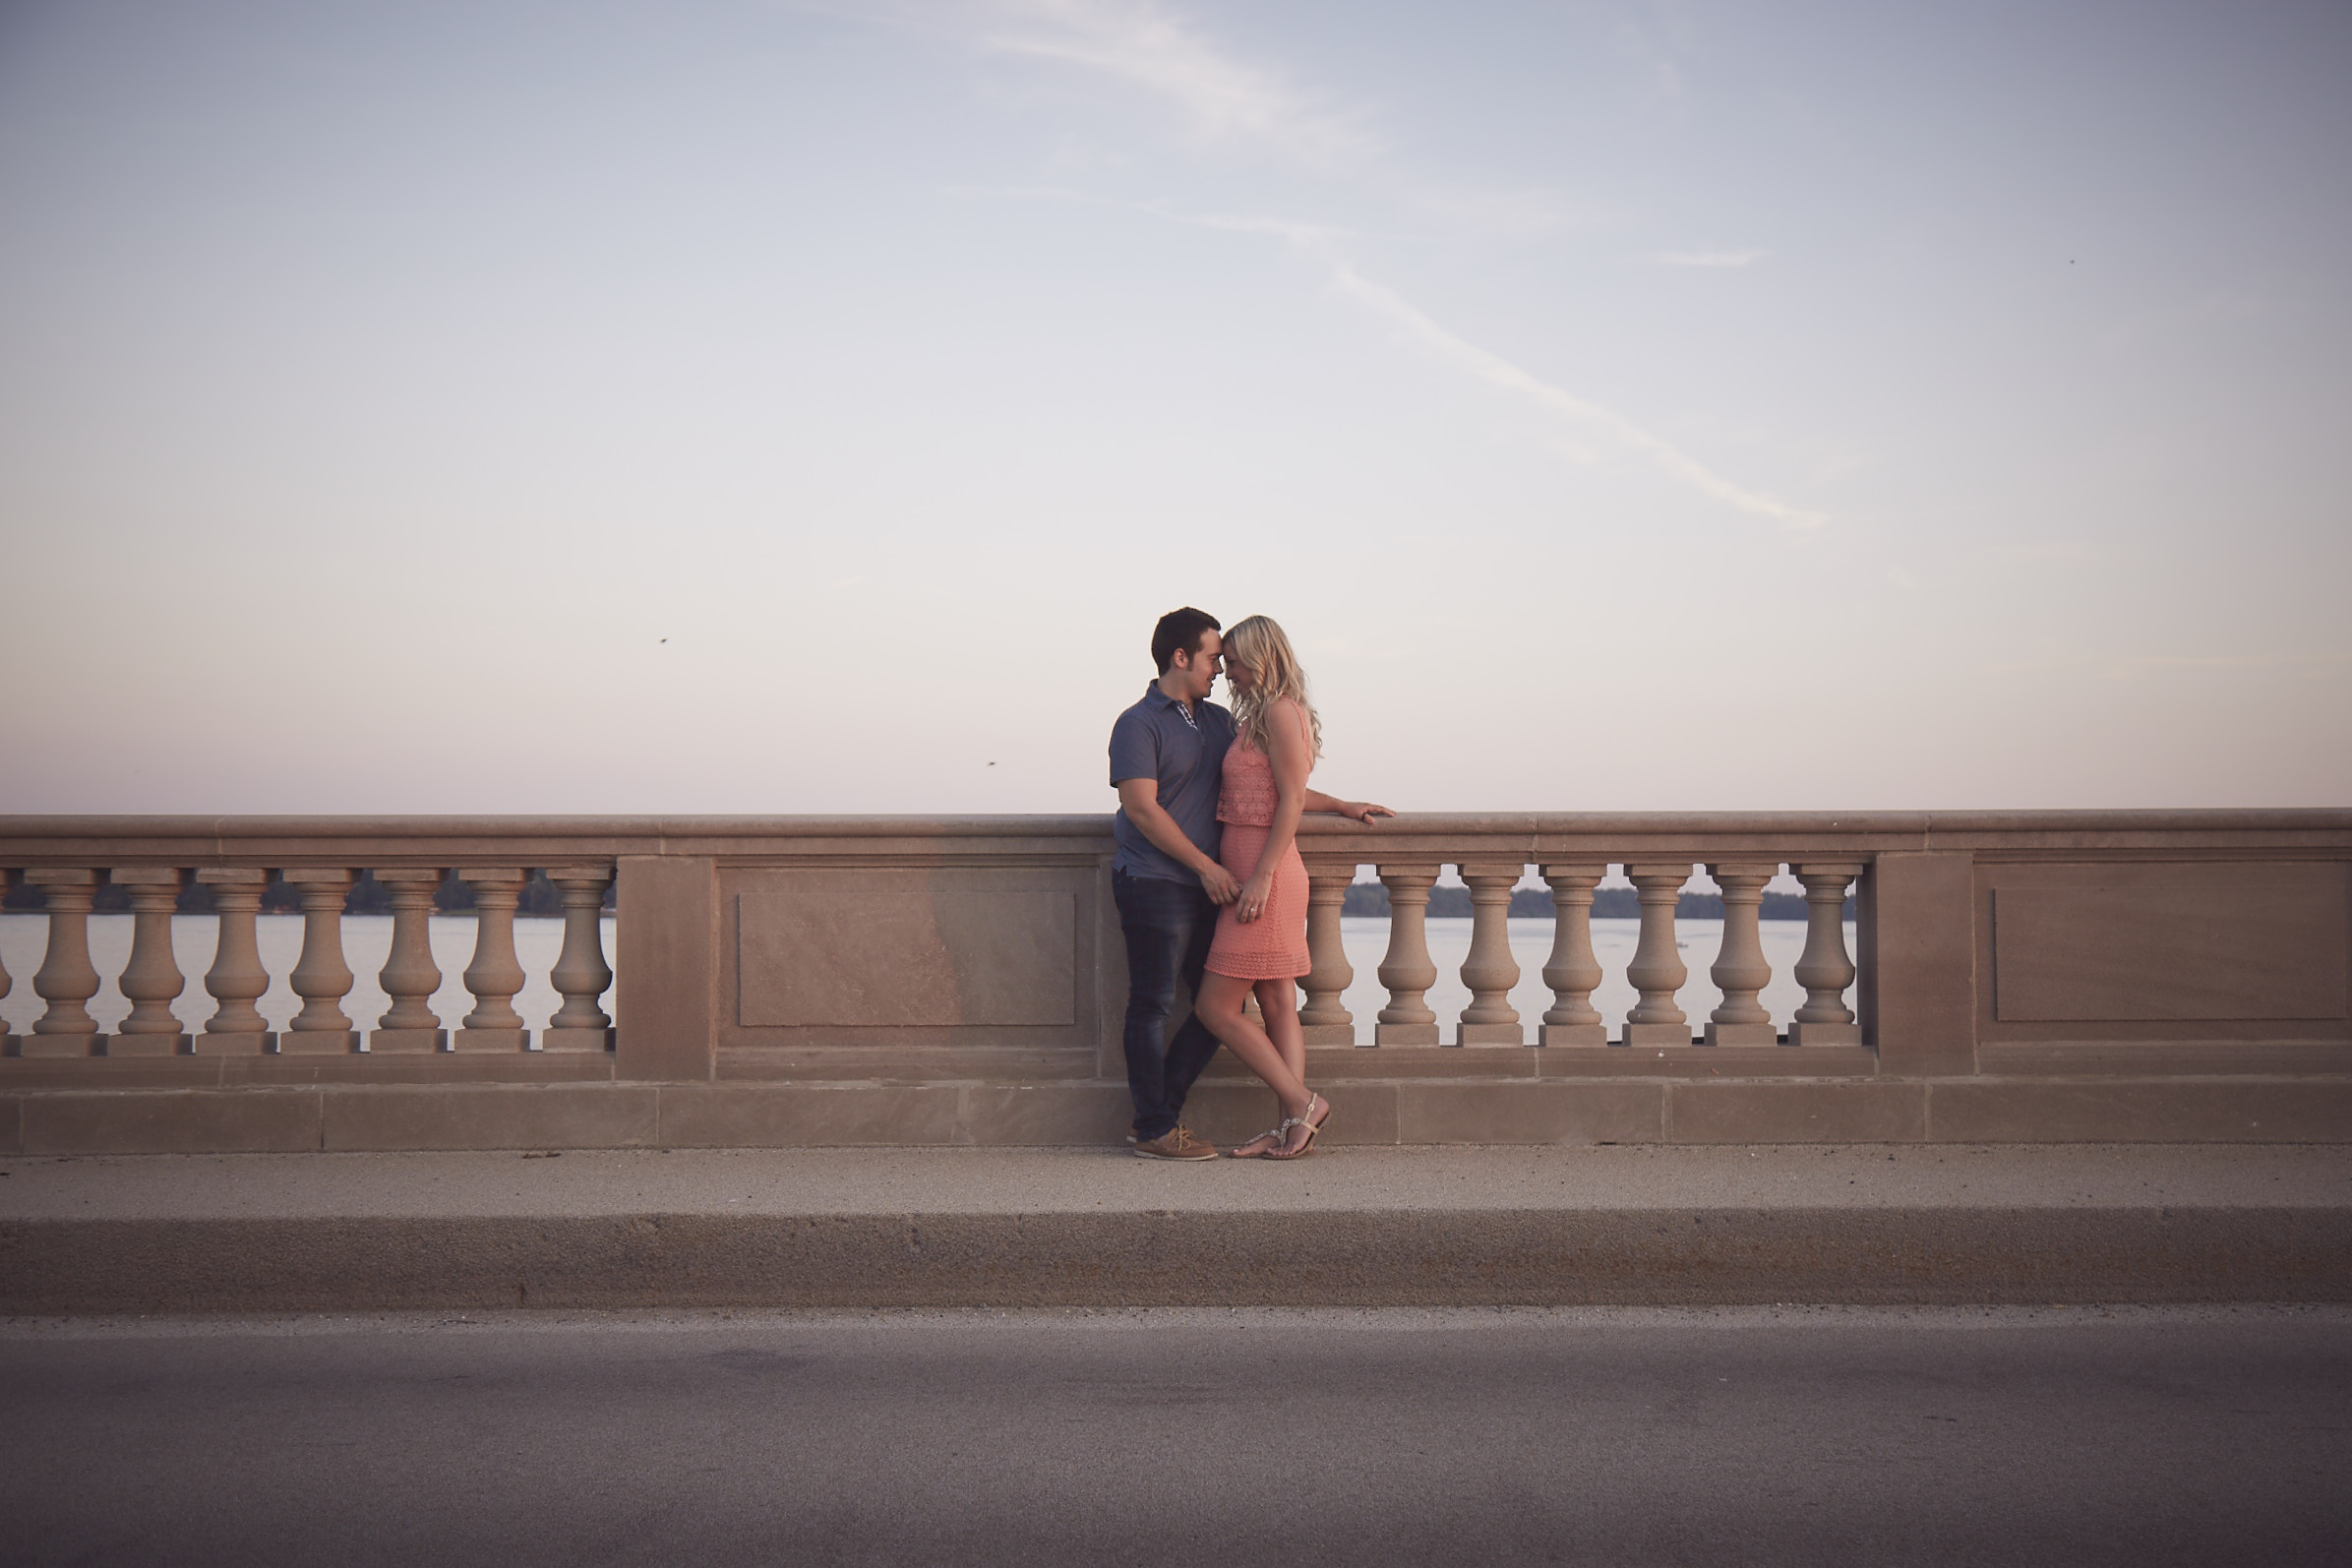 summer engagement shoot on Illinois bridge